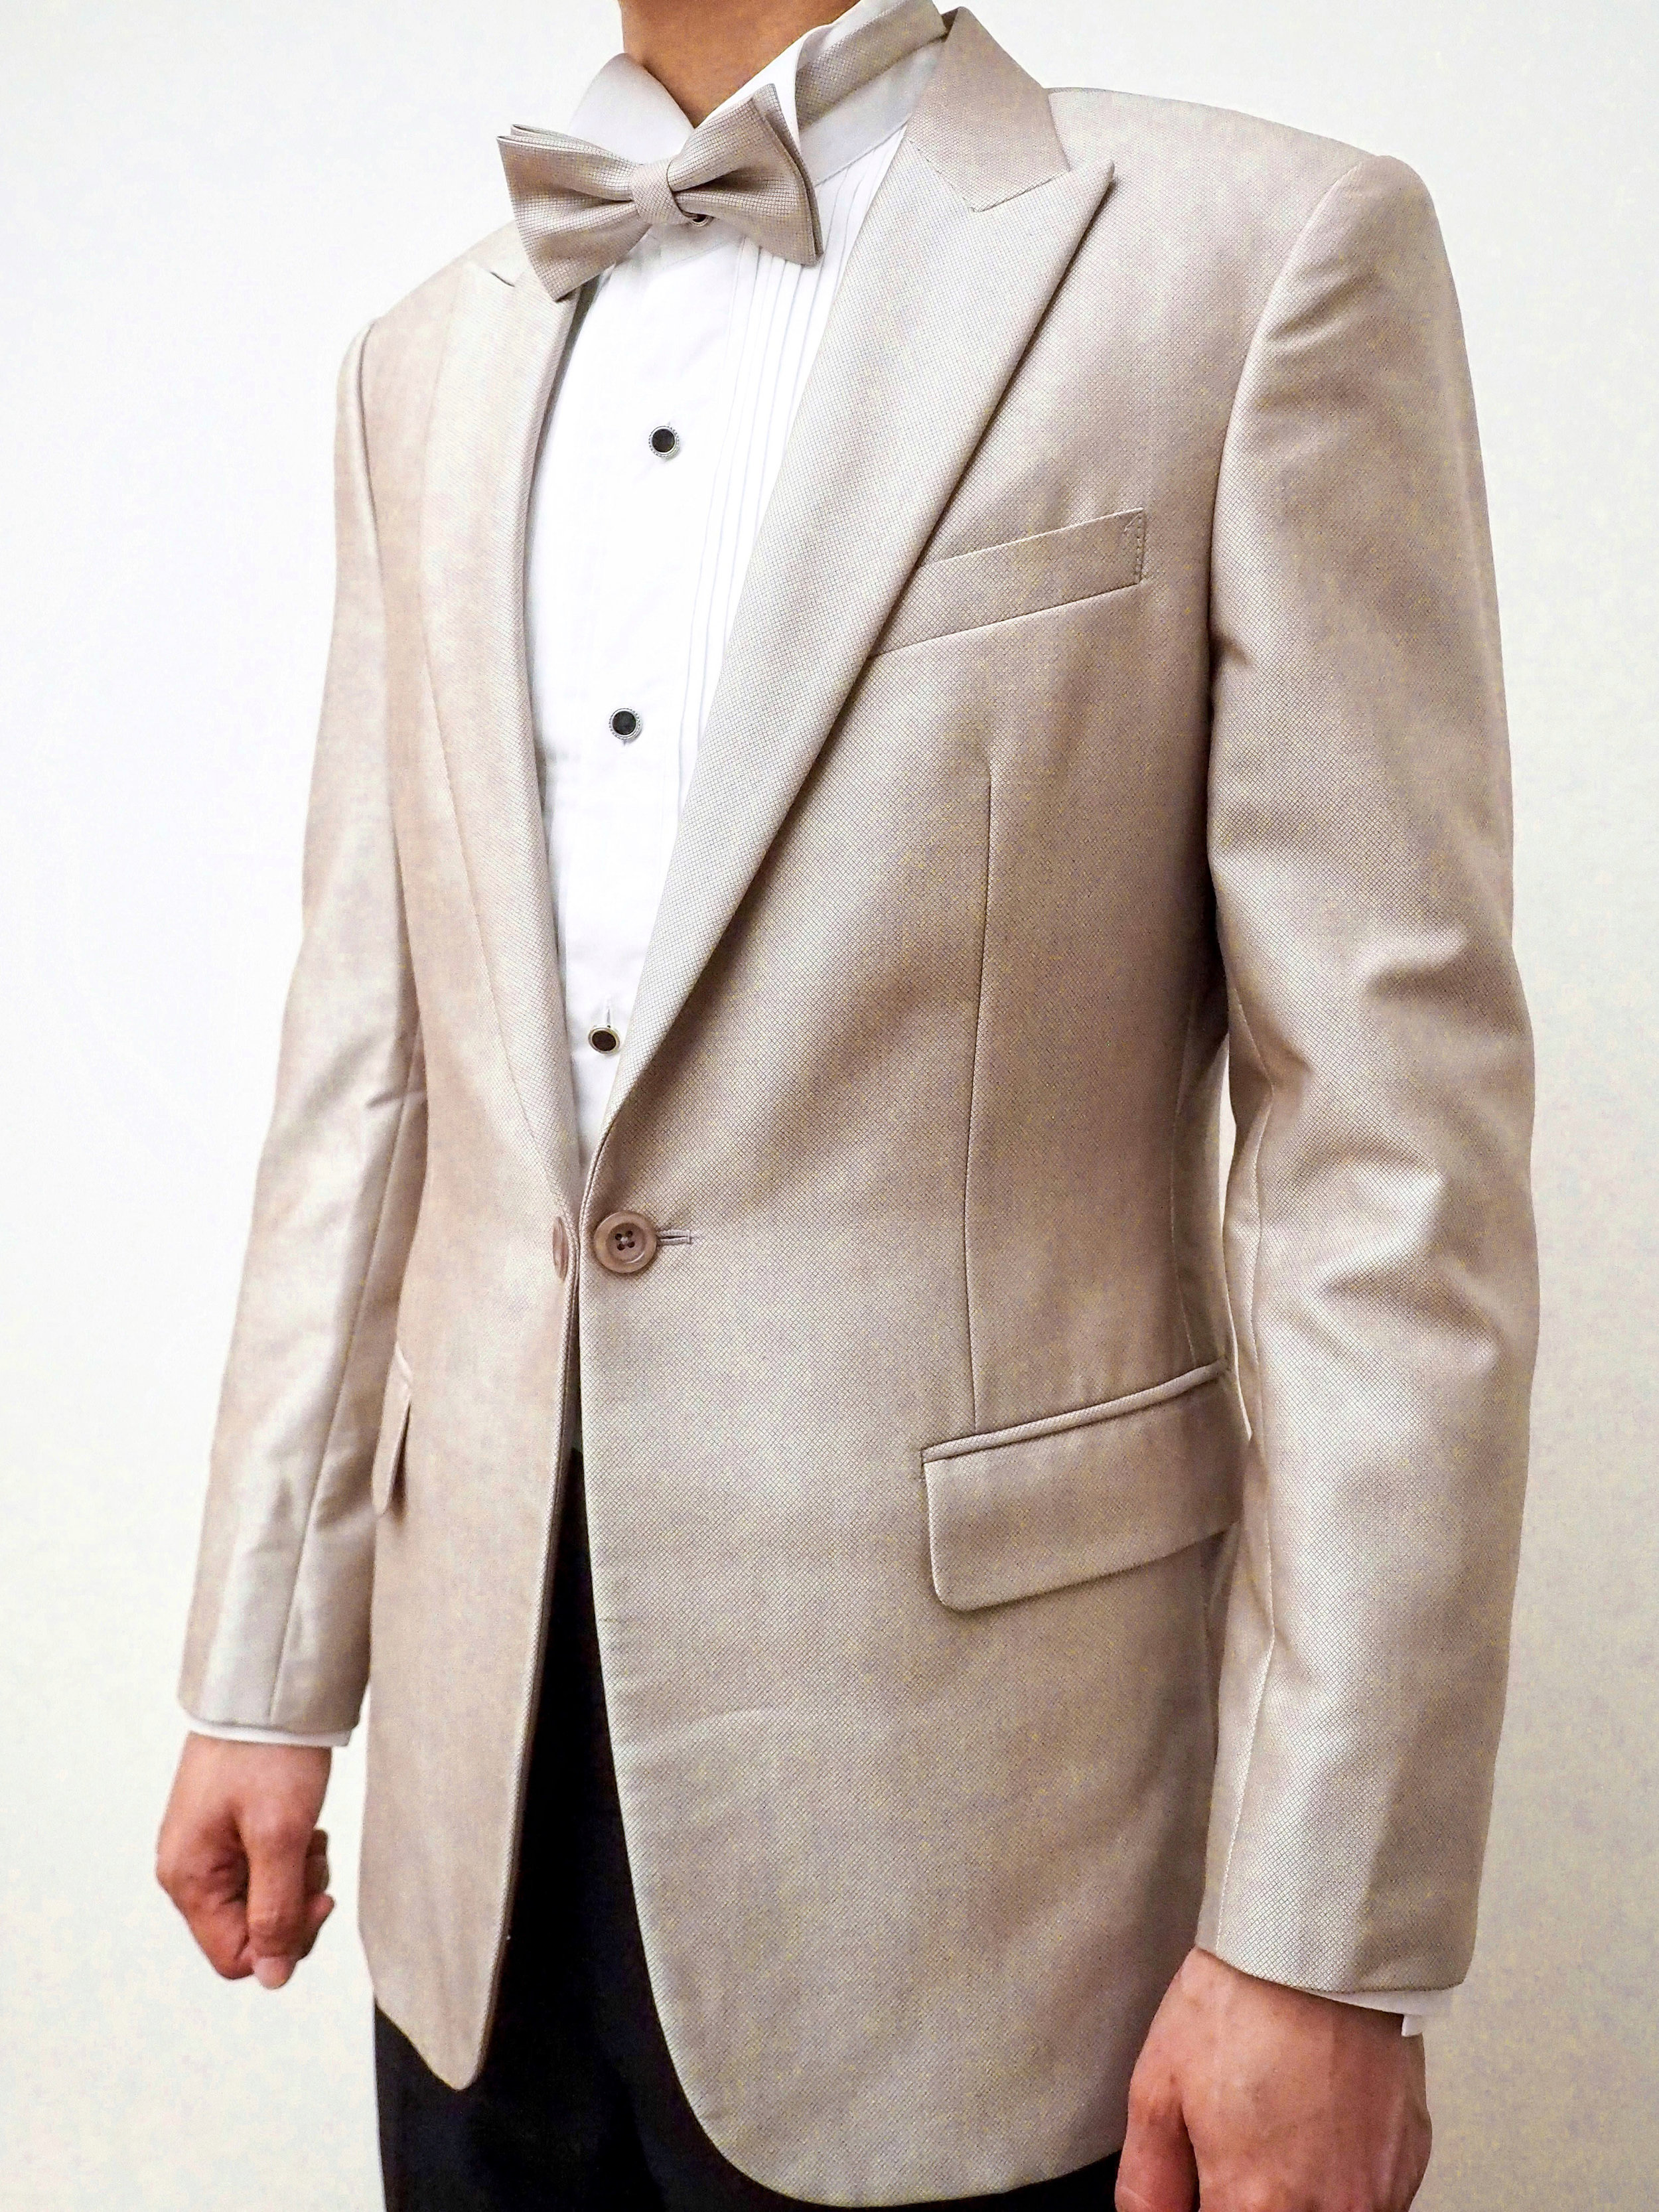 Champagne coloured suit by CCM Wedding